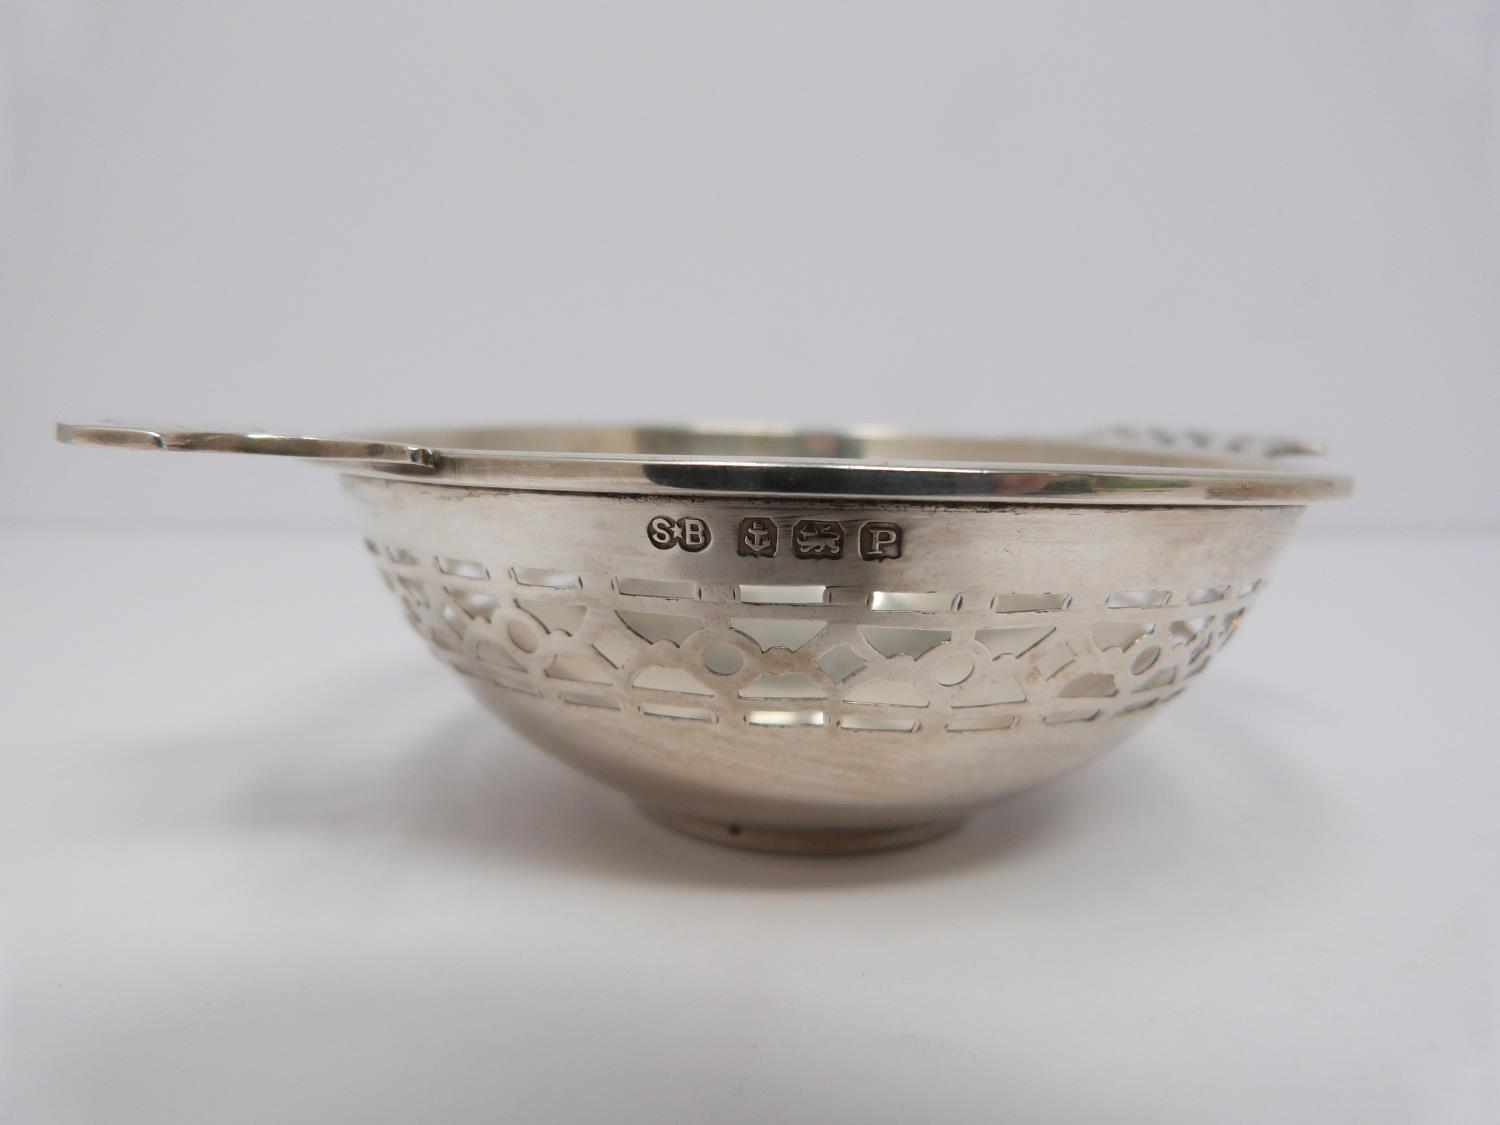 Two silver and cut glass sugar sifters, two silver pierced dishes and a silver engraved napkin ring, - Image 6 of 7